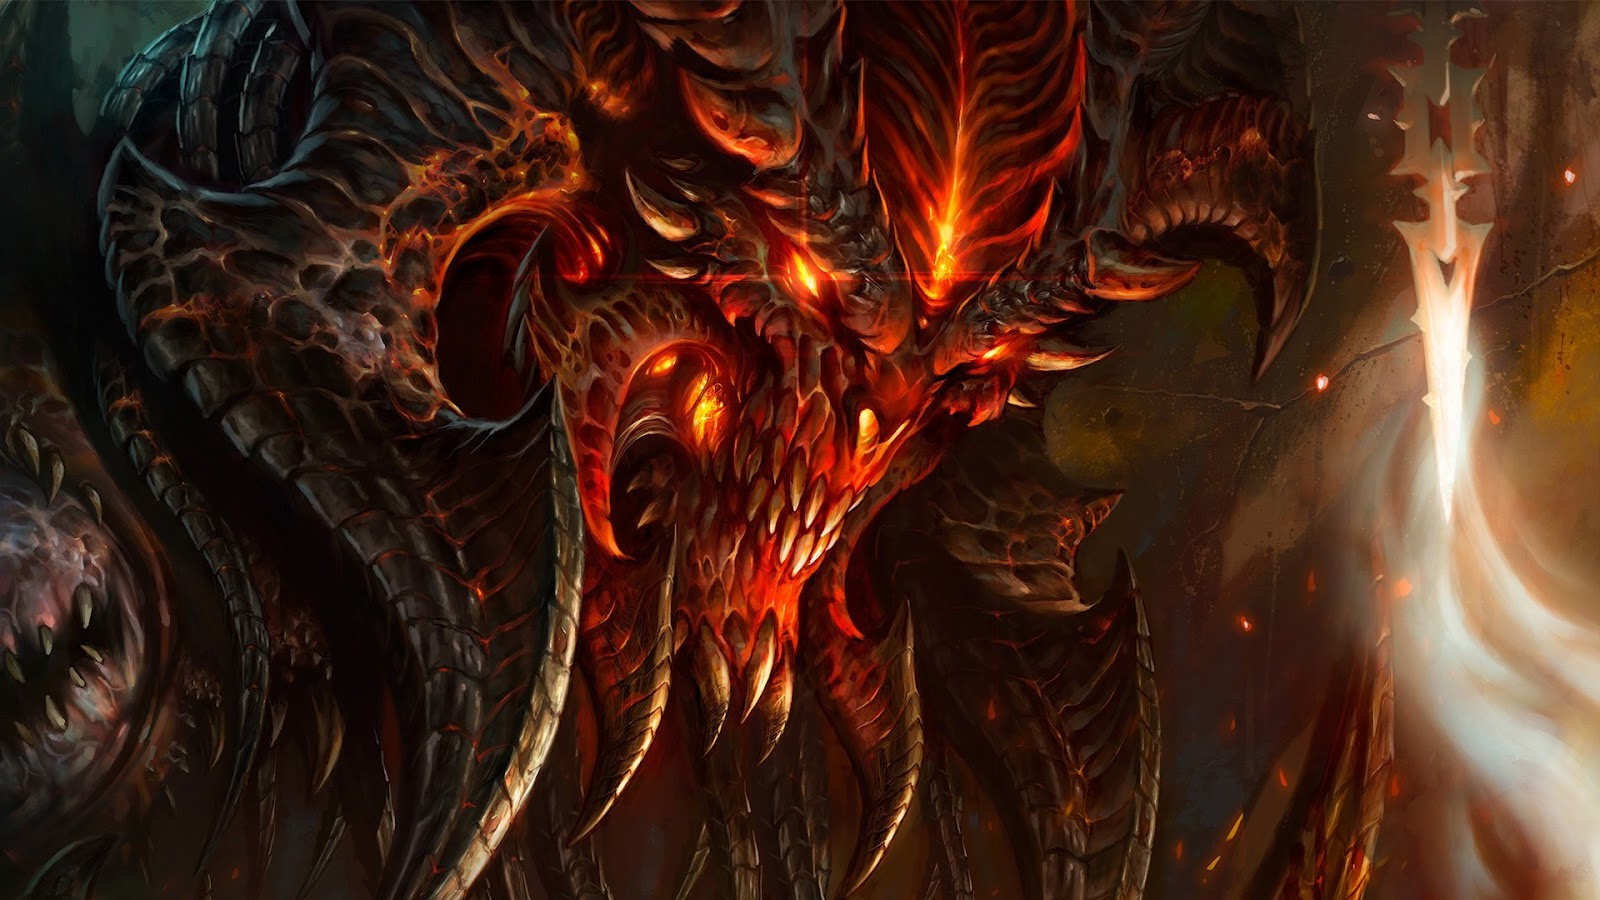 diablo 3 pictures download hd wallpapers